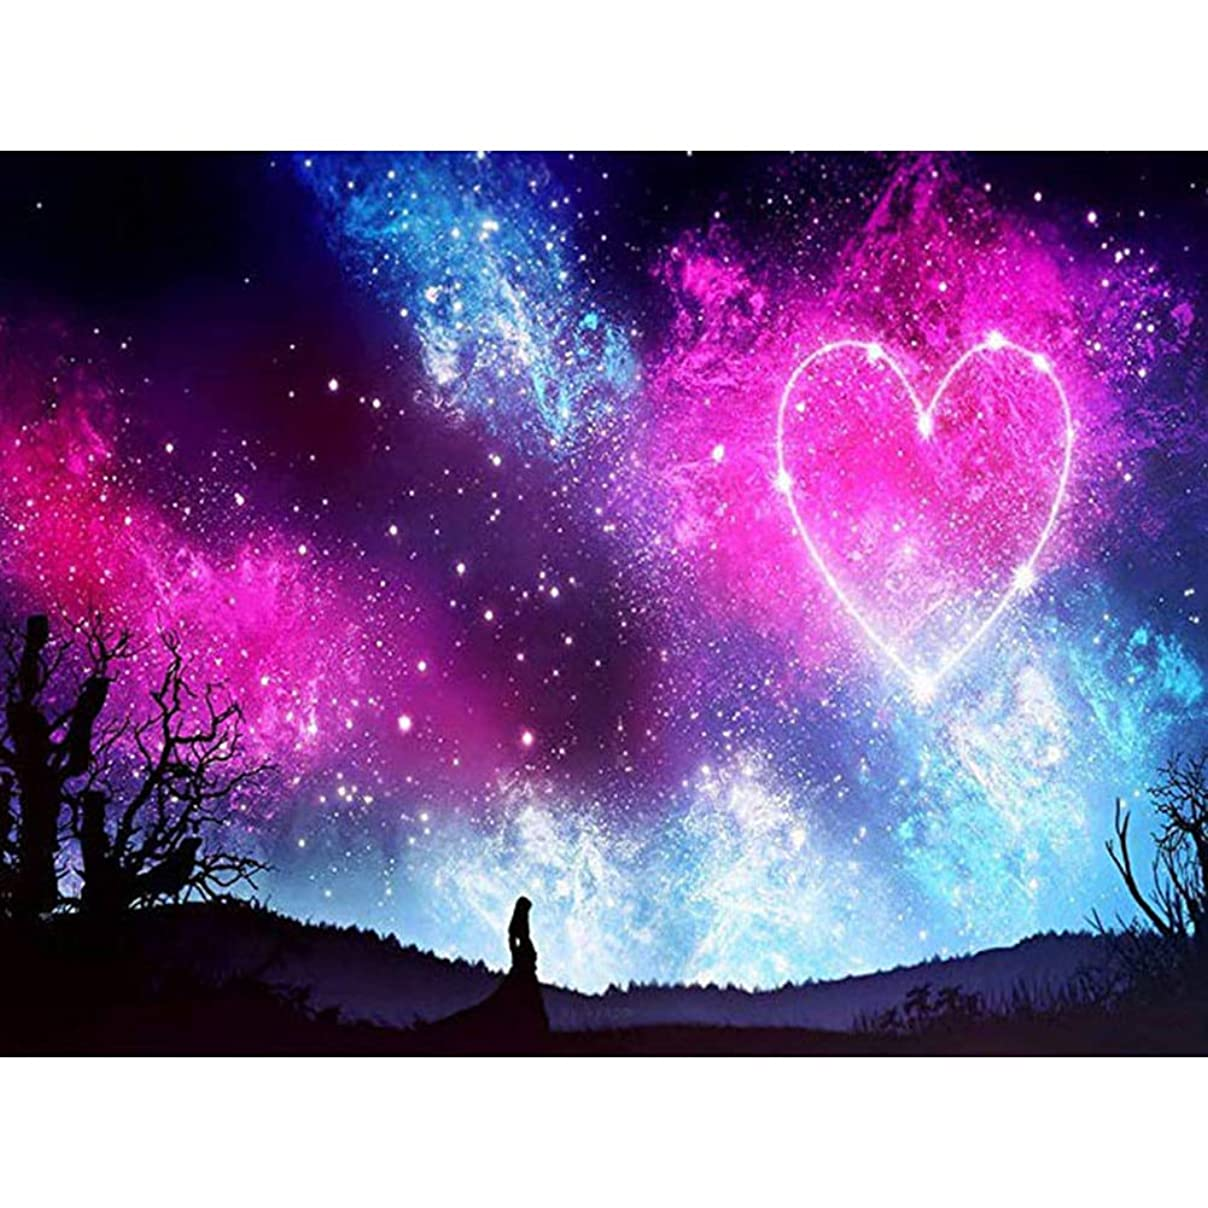 DIY 5D Diamond Painting by Number Kits, Crystal Rhinestone Diamond Embroidery Paintings Pictures Arts Craft for Home Wall Decor, Full Drill, Colorful Love in The Star Sky (J6110CSAX-11.8X15.7in) dpszj421087